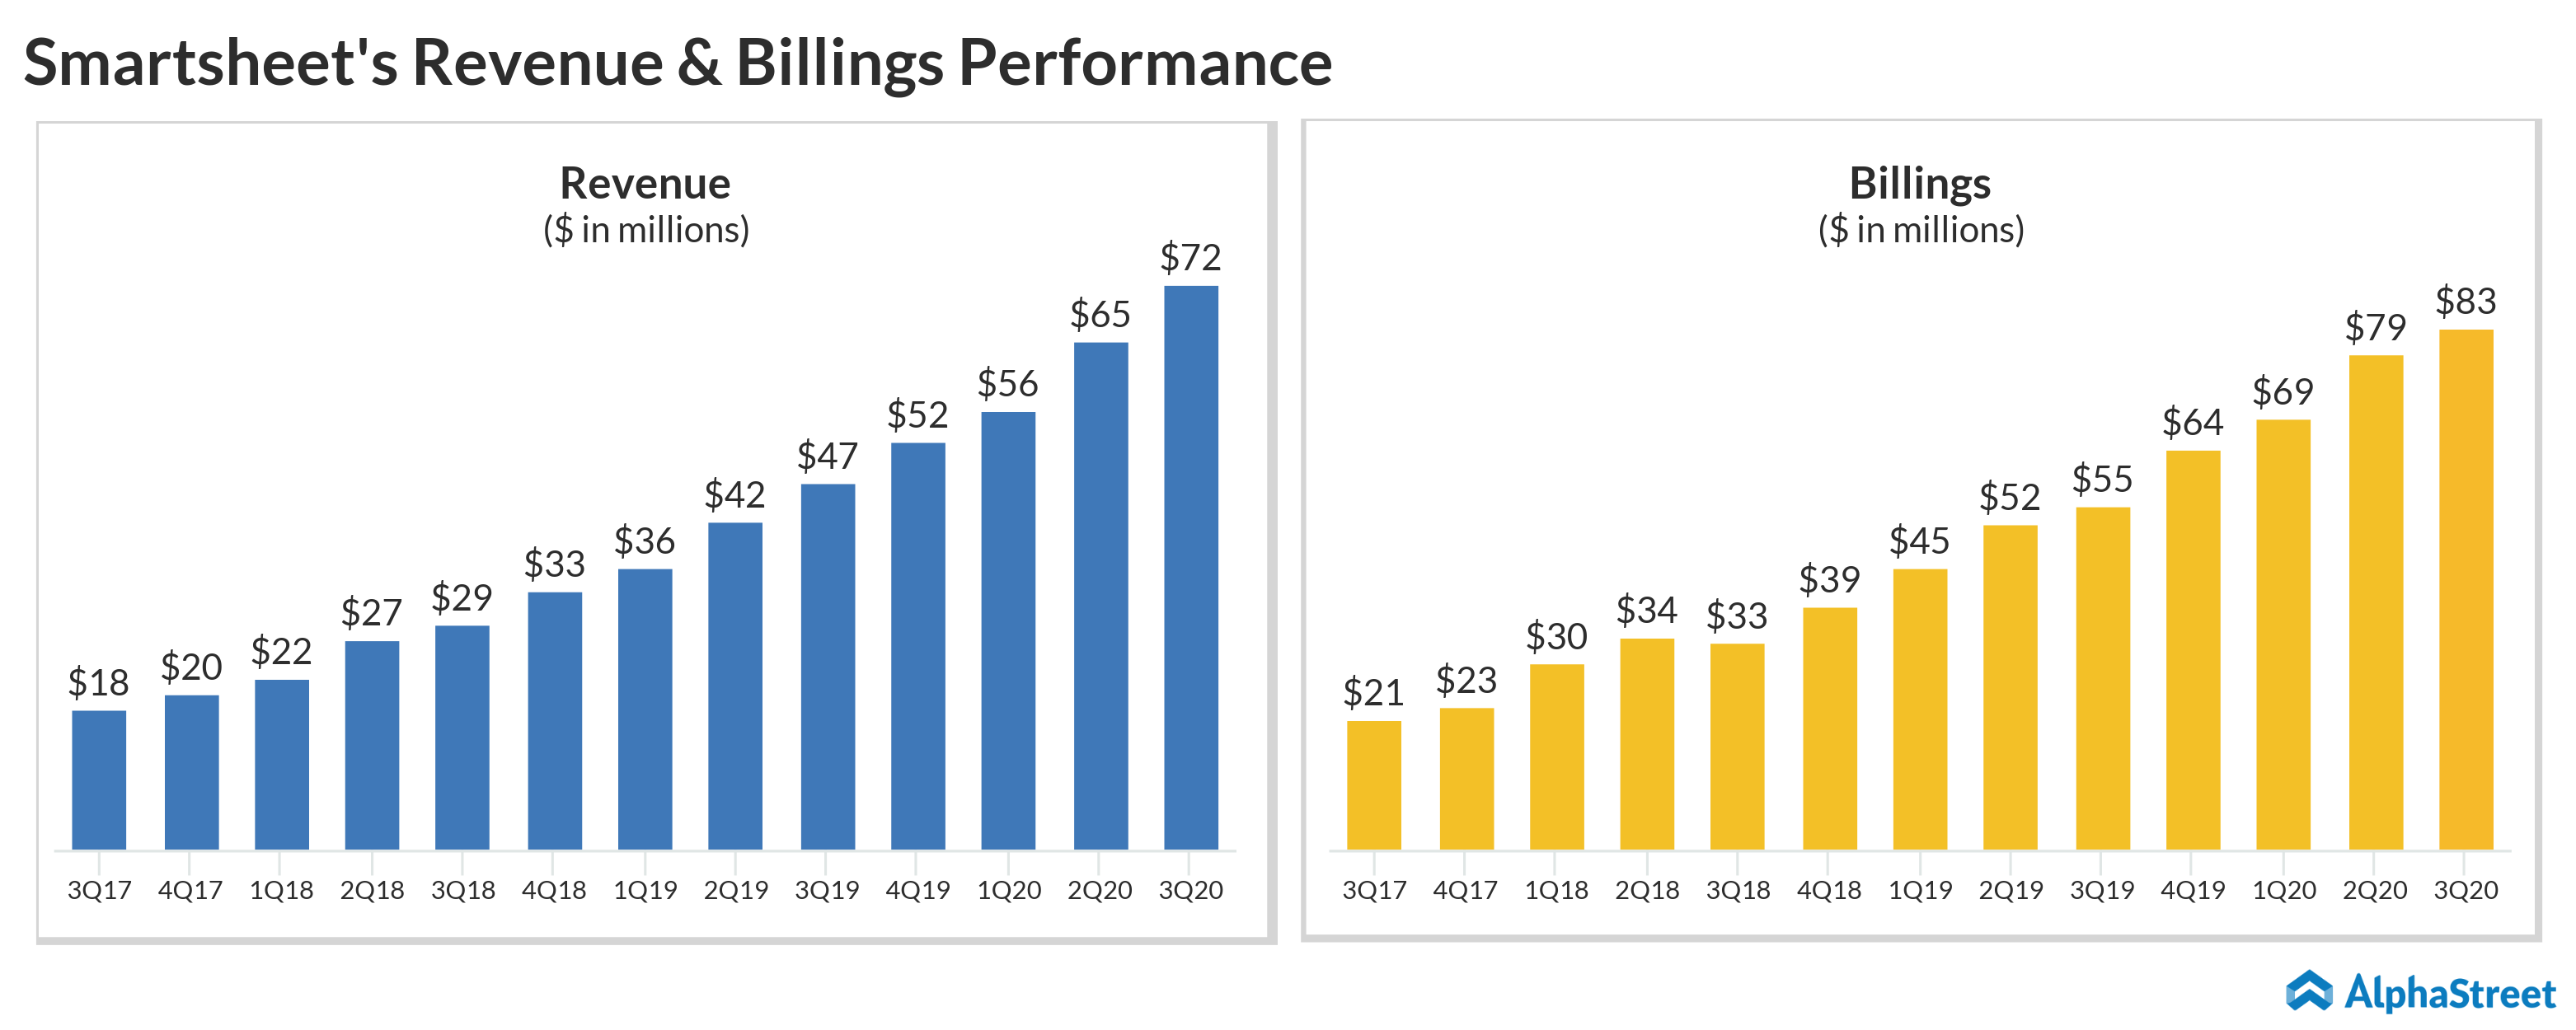 Smartsheet revenue and billings performance